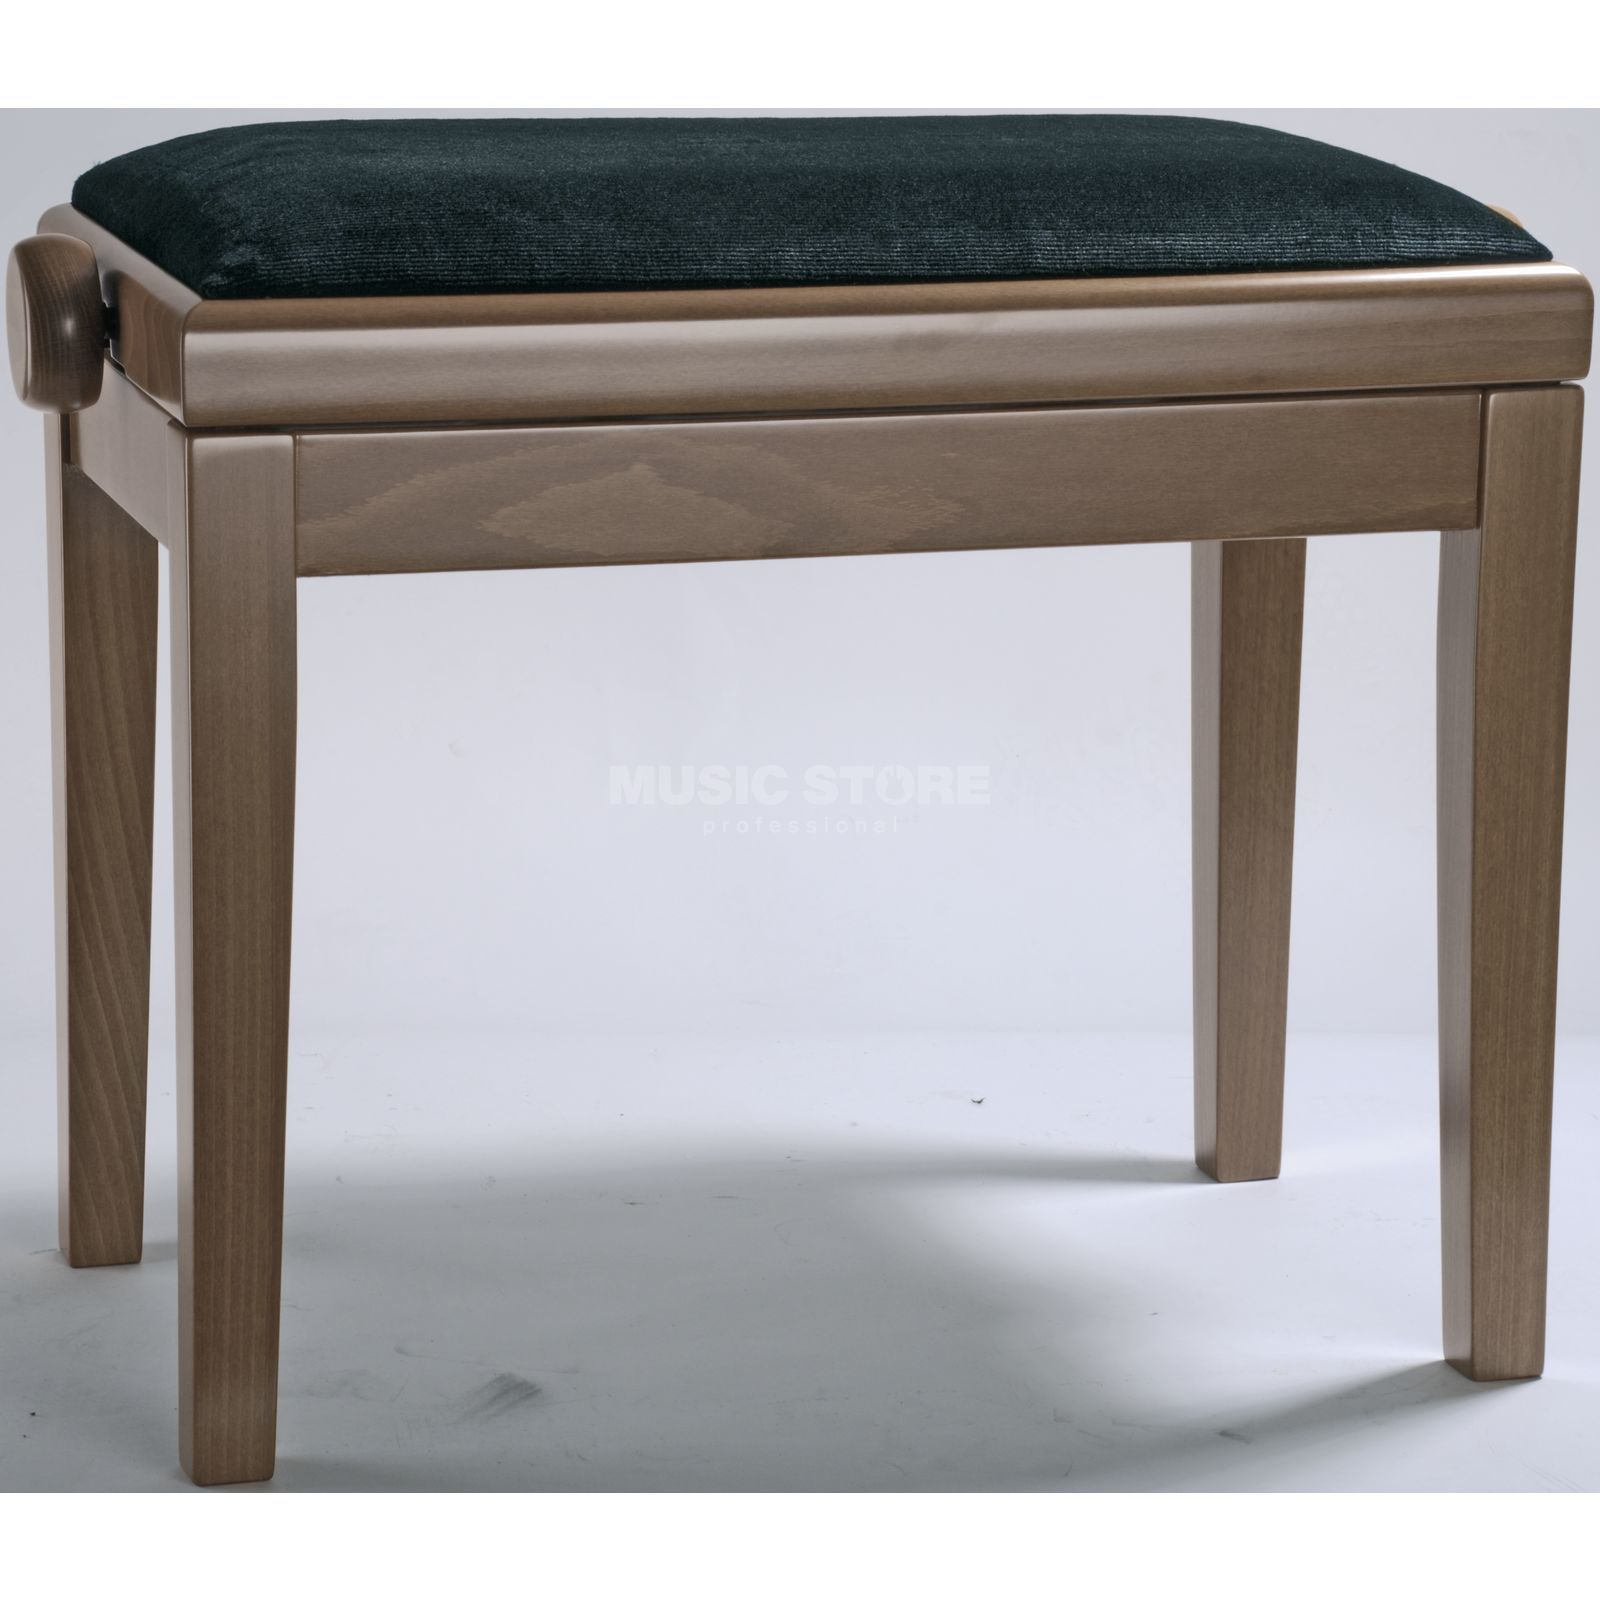 Burghardt B5 Piano Bench Cherry antique Seat Cover Velvet Black Produktbillede